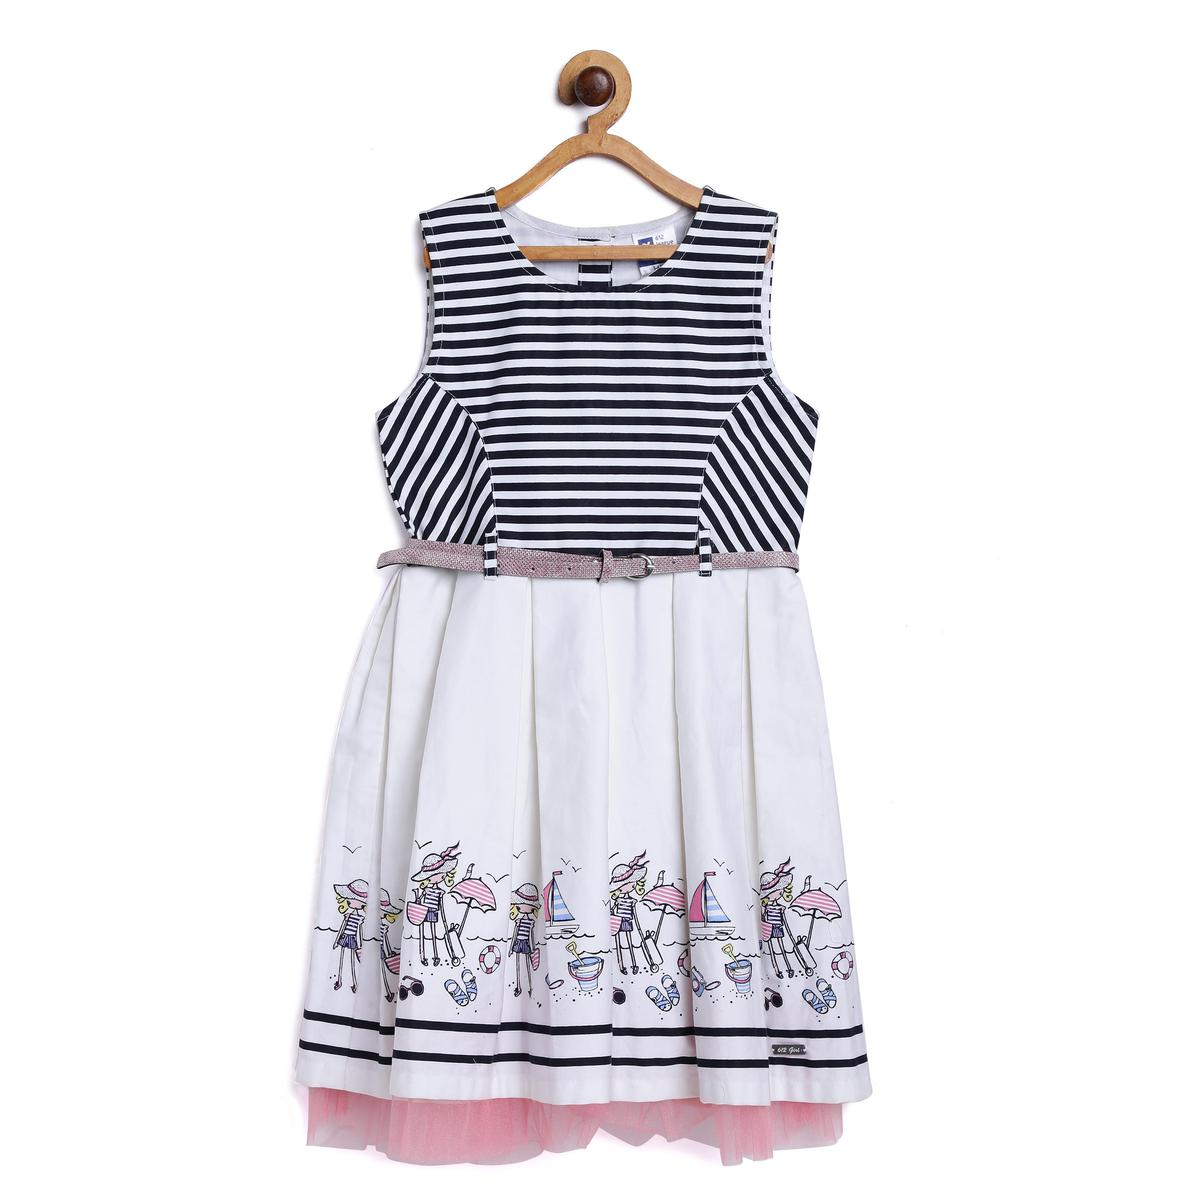 612 League - White Colored Striped With Belt Dress For Girls